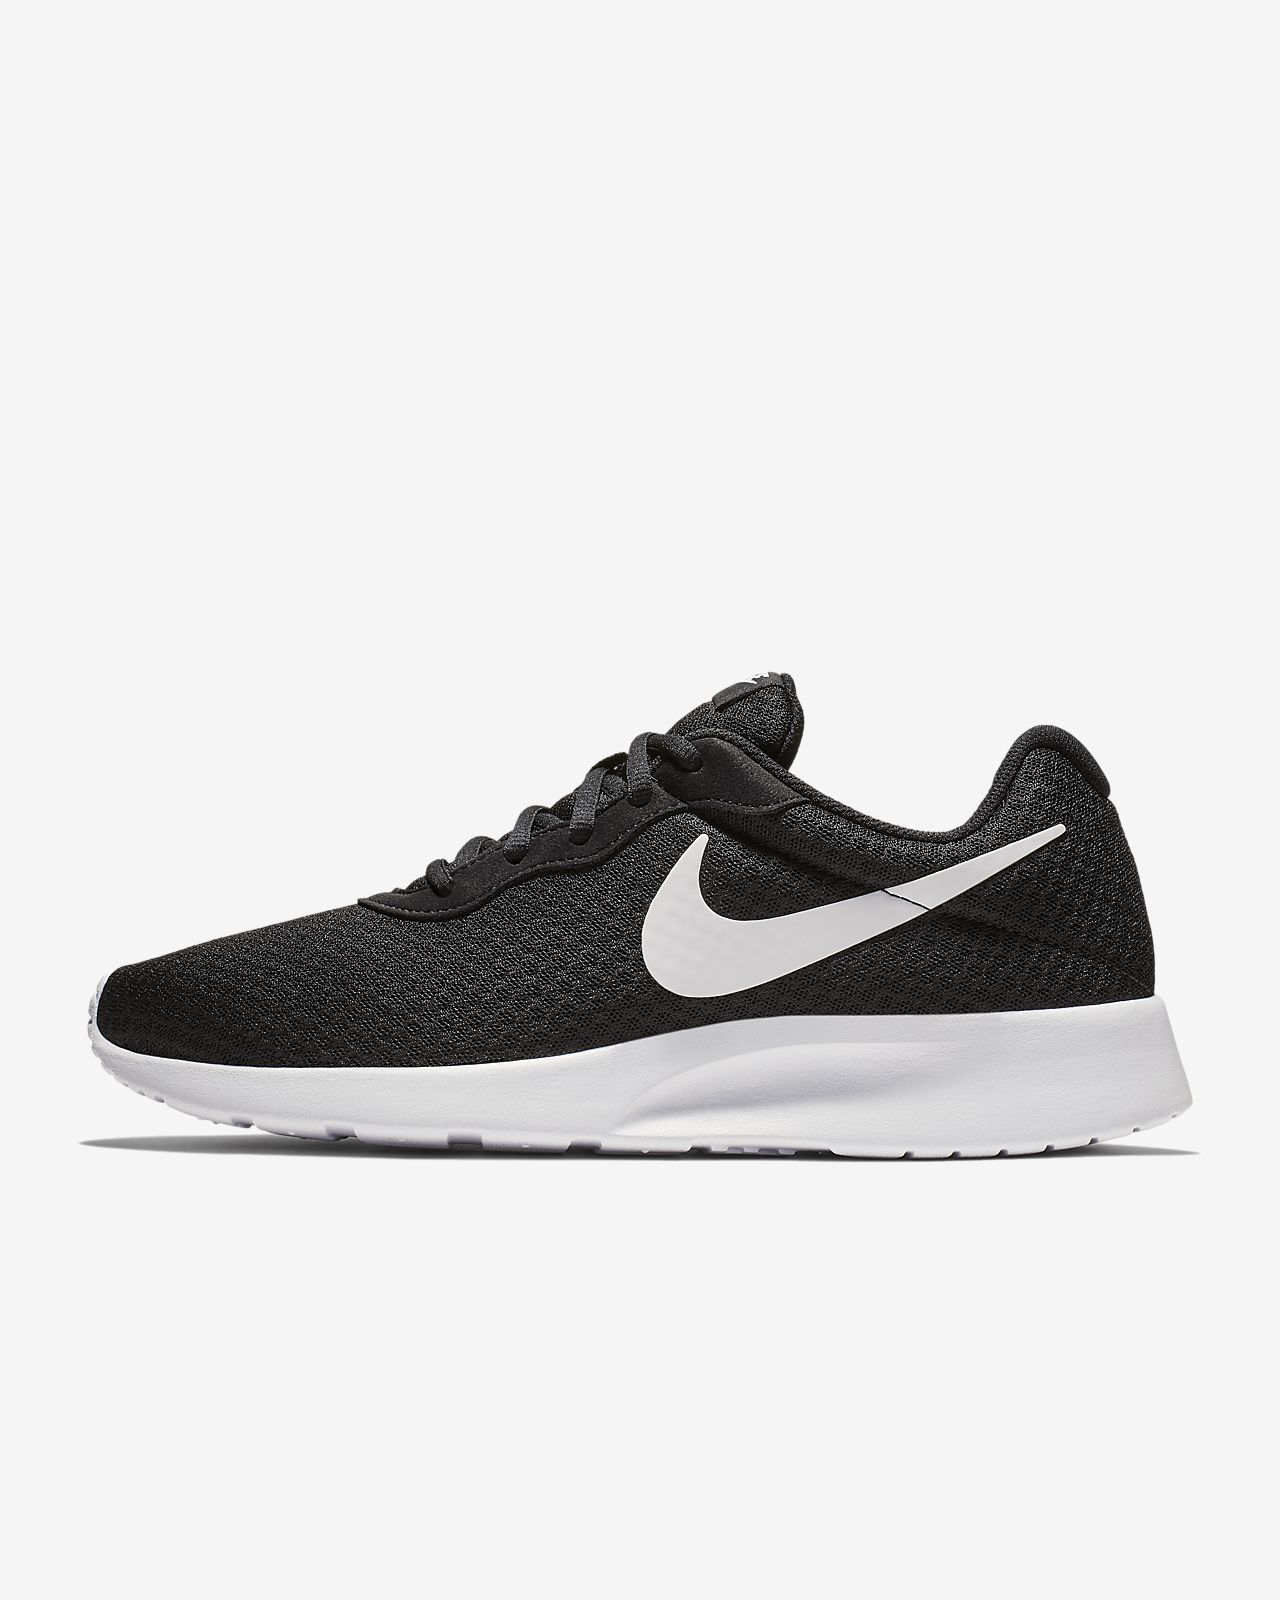 info for 08c3d 88991 Low Resolution Nike Tanjun Womens Shoe Nike Tanjun Womens Shoe